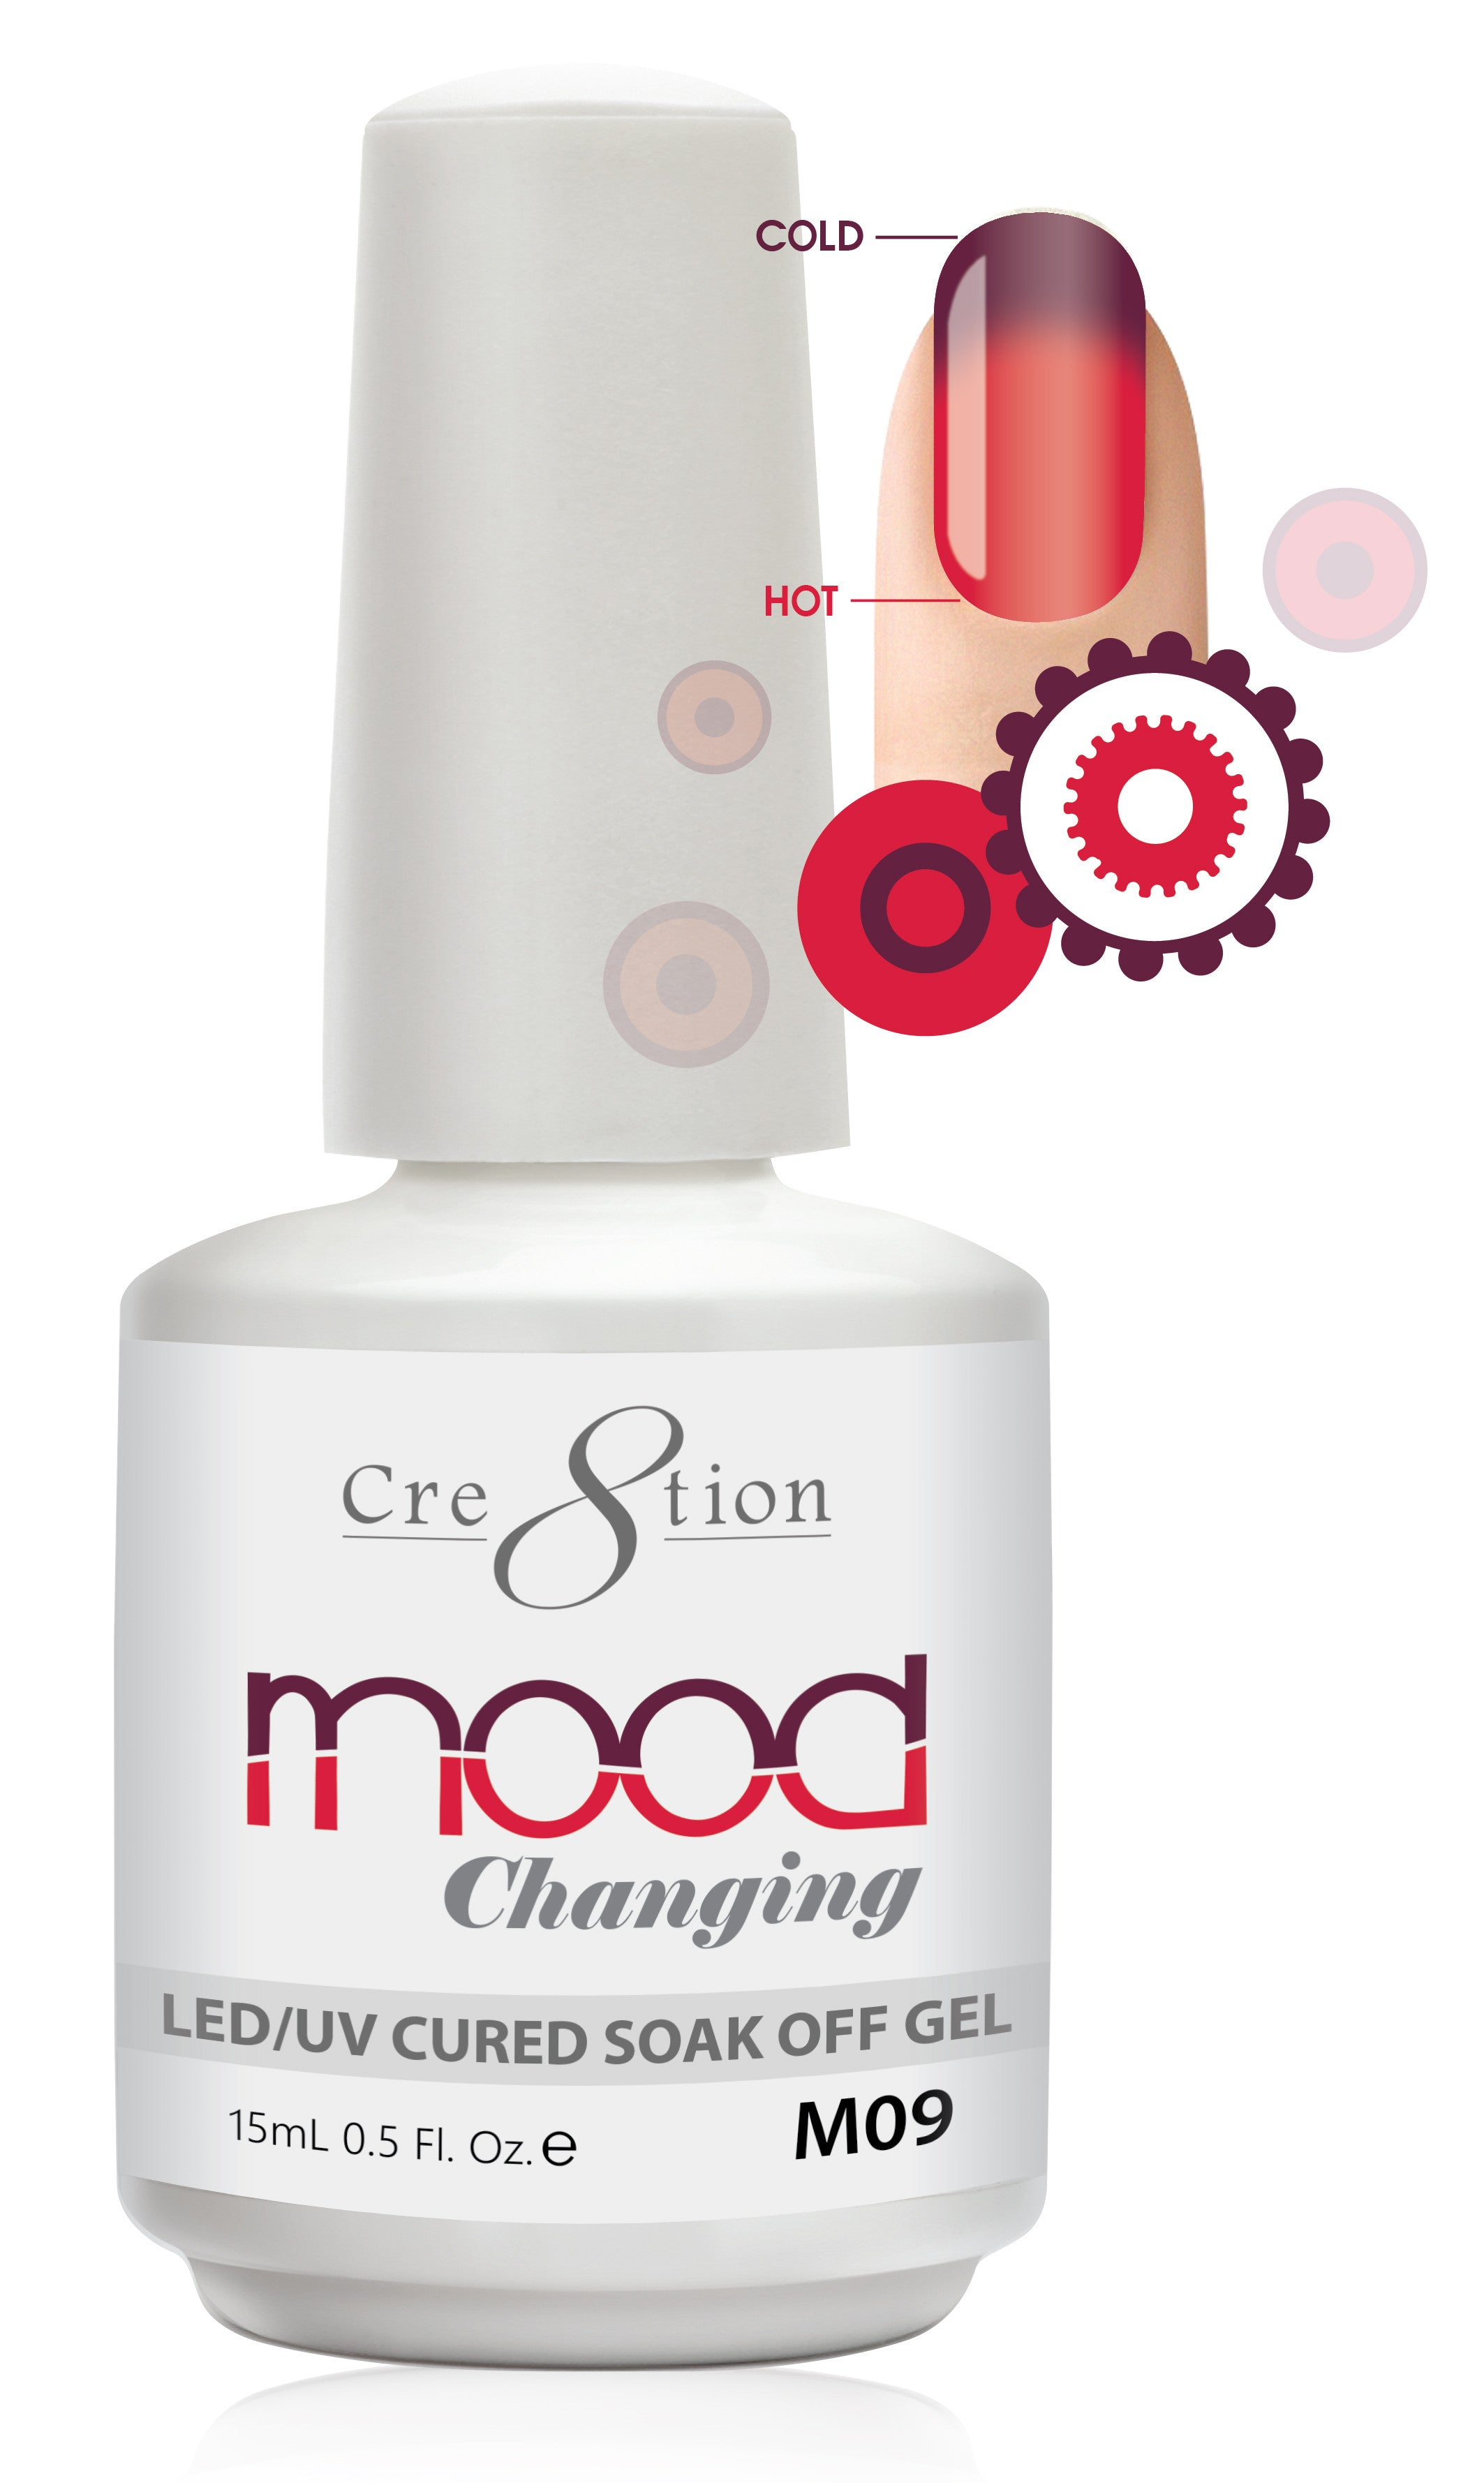 Cre8tion Mood Changing Soak Off Gel M09-Creamy